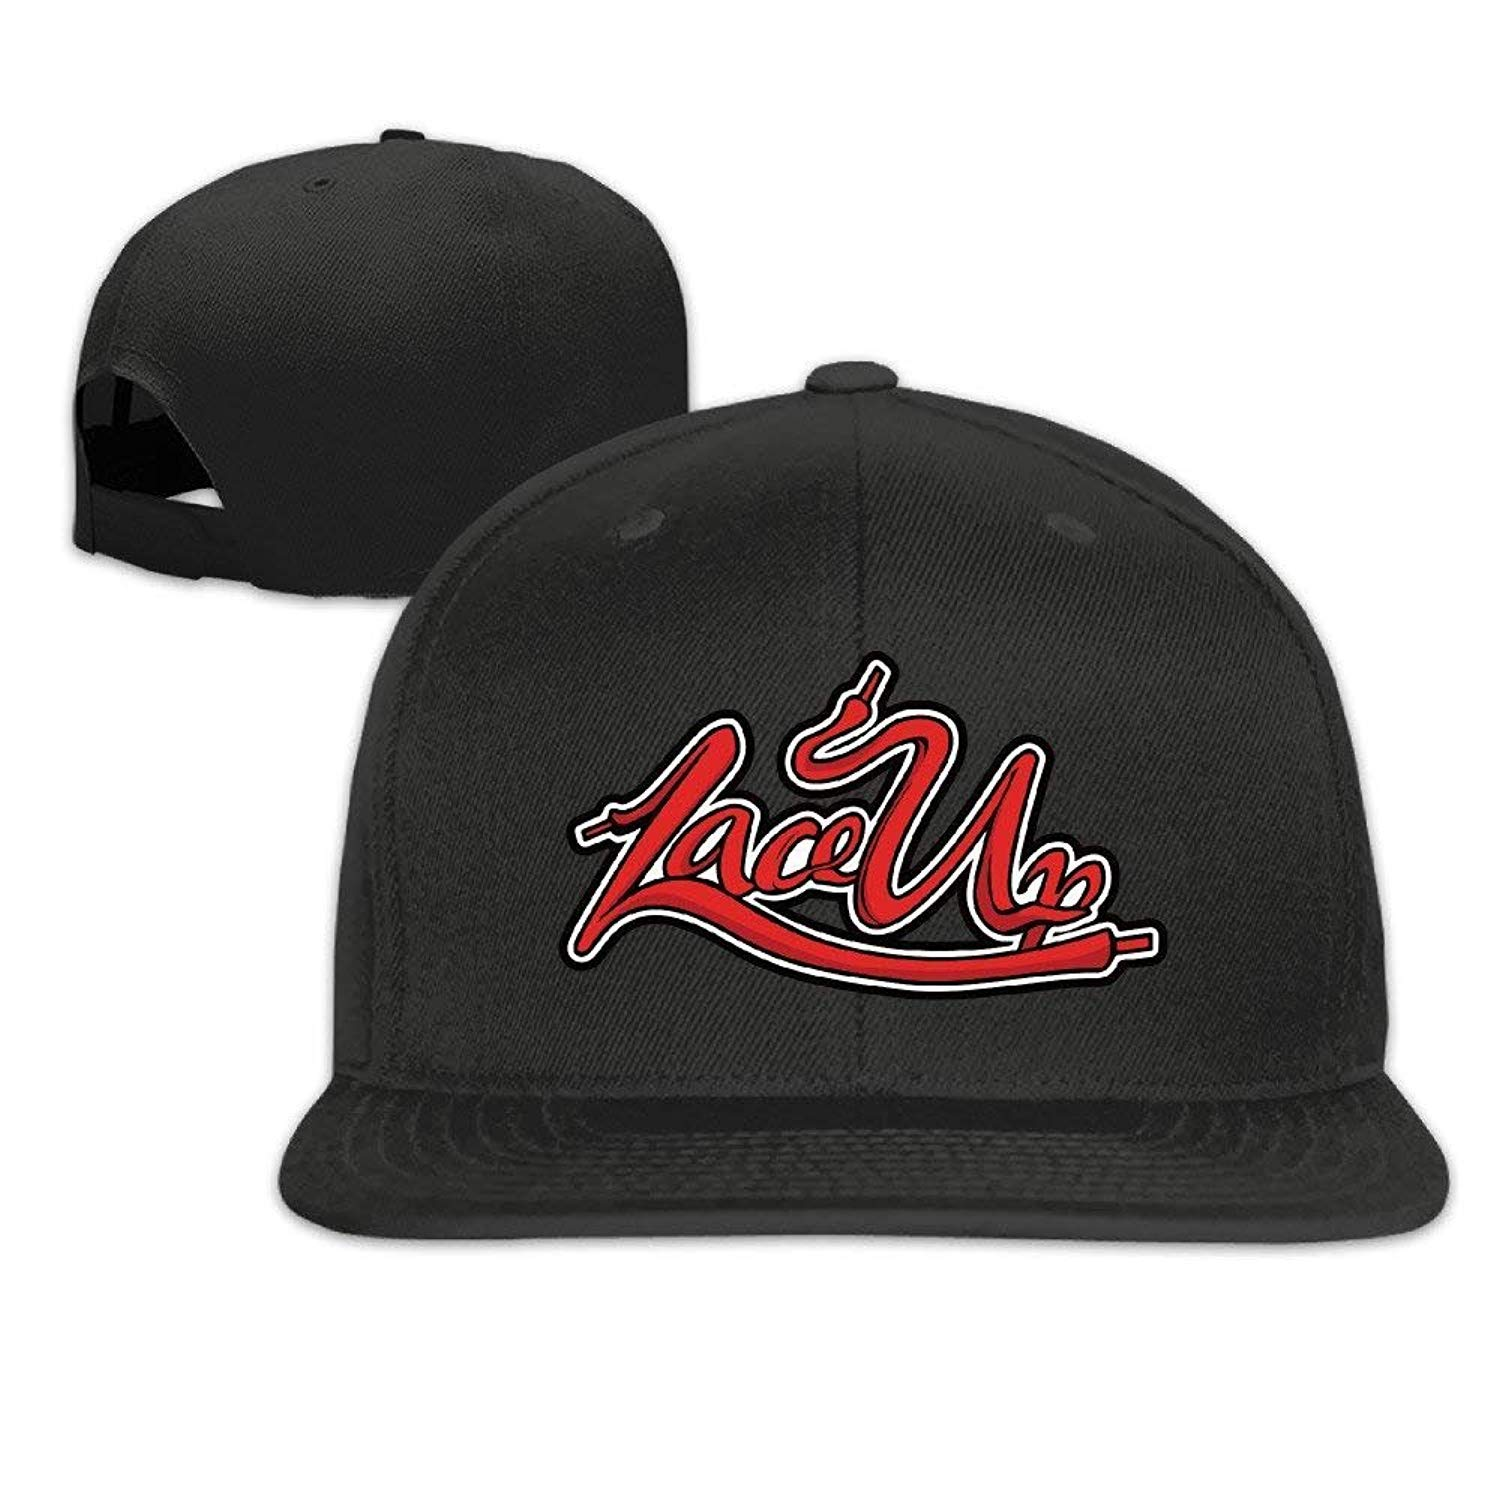 WYICPLO Fashion Baseball Caps Hats Funny Bag MGK Lace Up Baseball cap Men Women Snapback